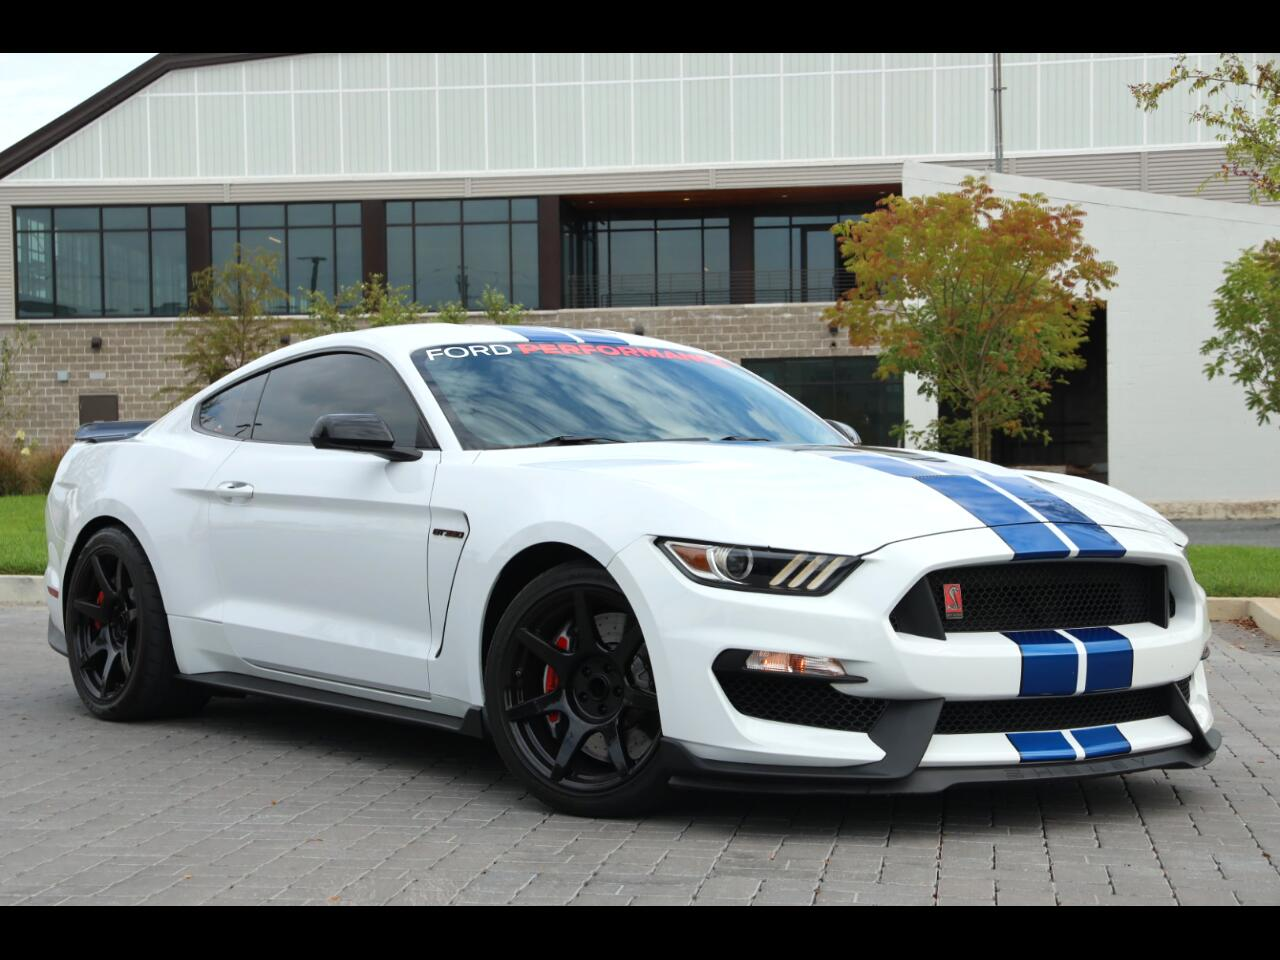 Ford Mustang Shelby GT350 Fastback 2017